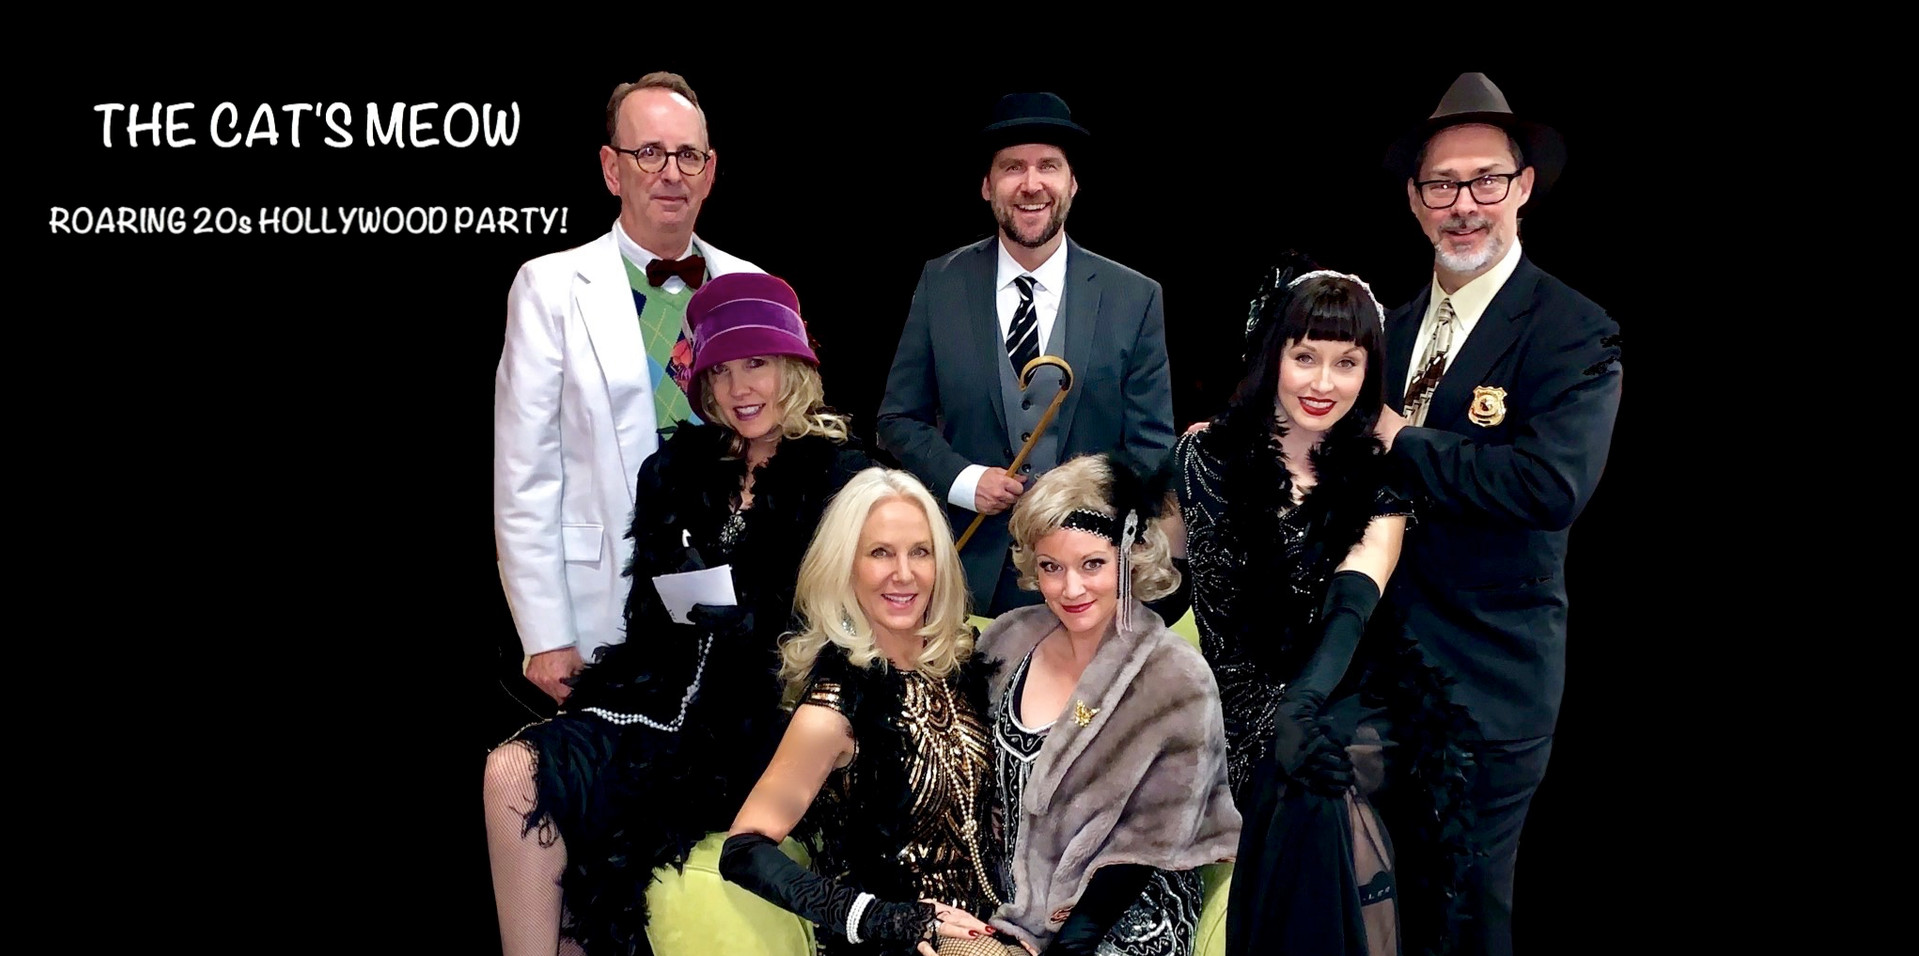 The Cast Cat's Meow Roaring 20s Hollywoo